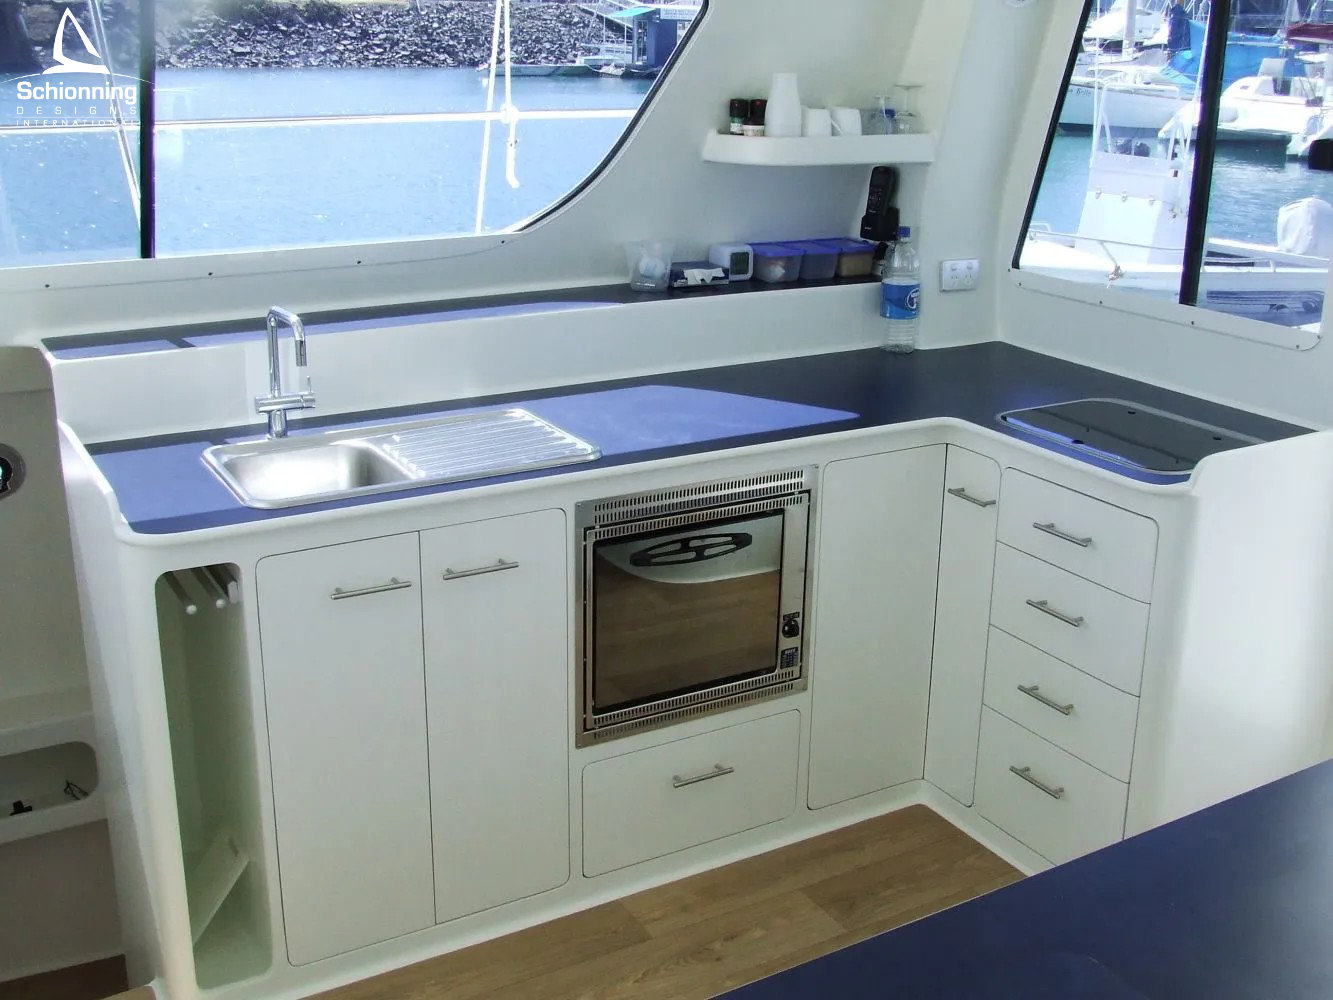 Ray Boat In skip SDI - Schionning Designs International Growler 950 VT